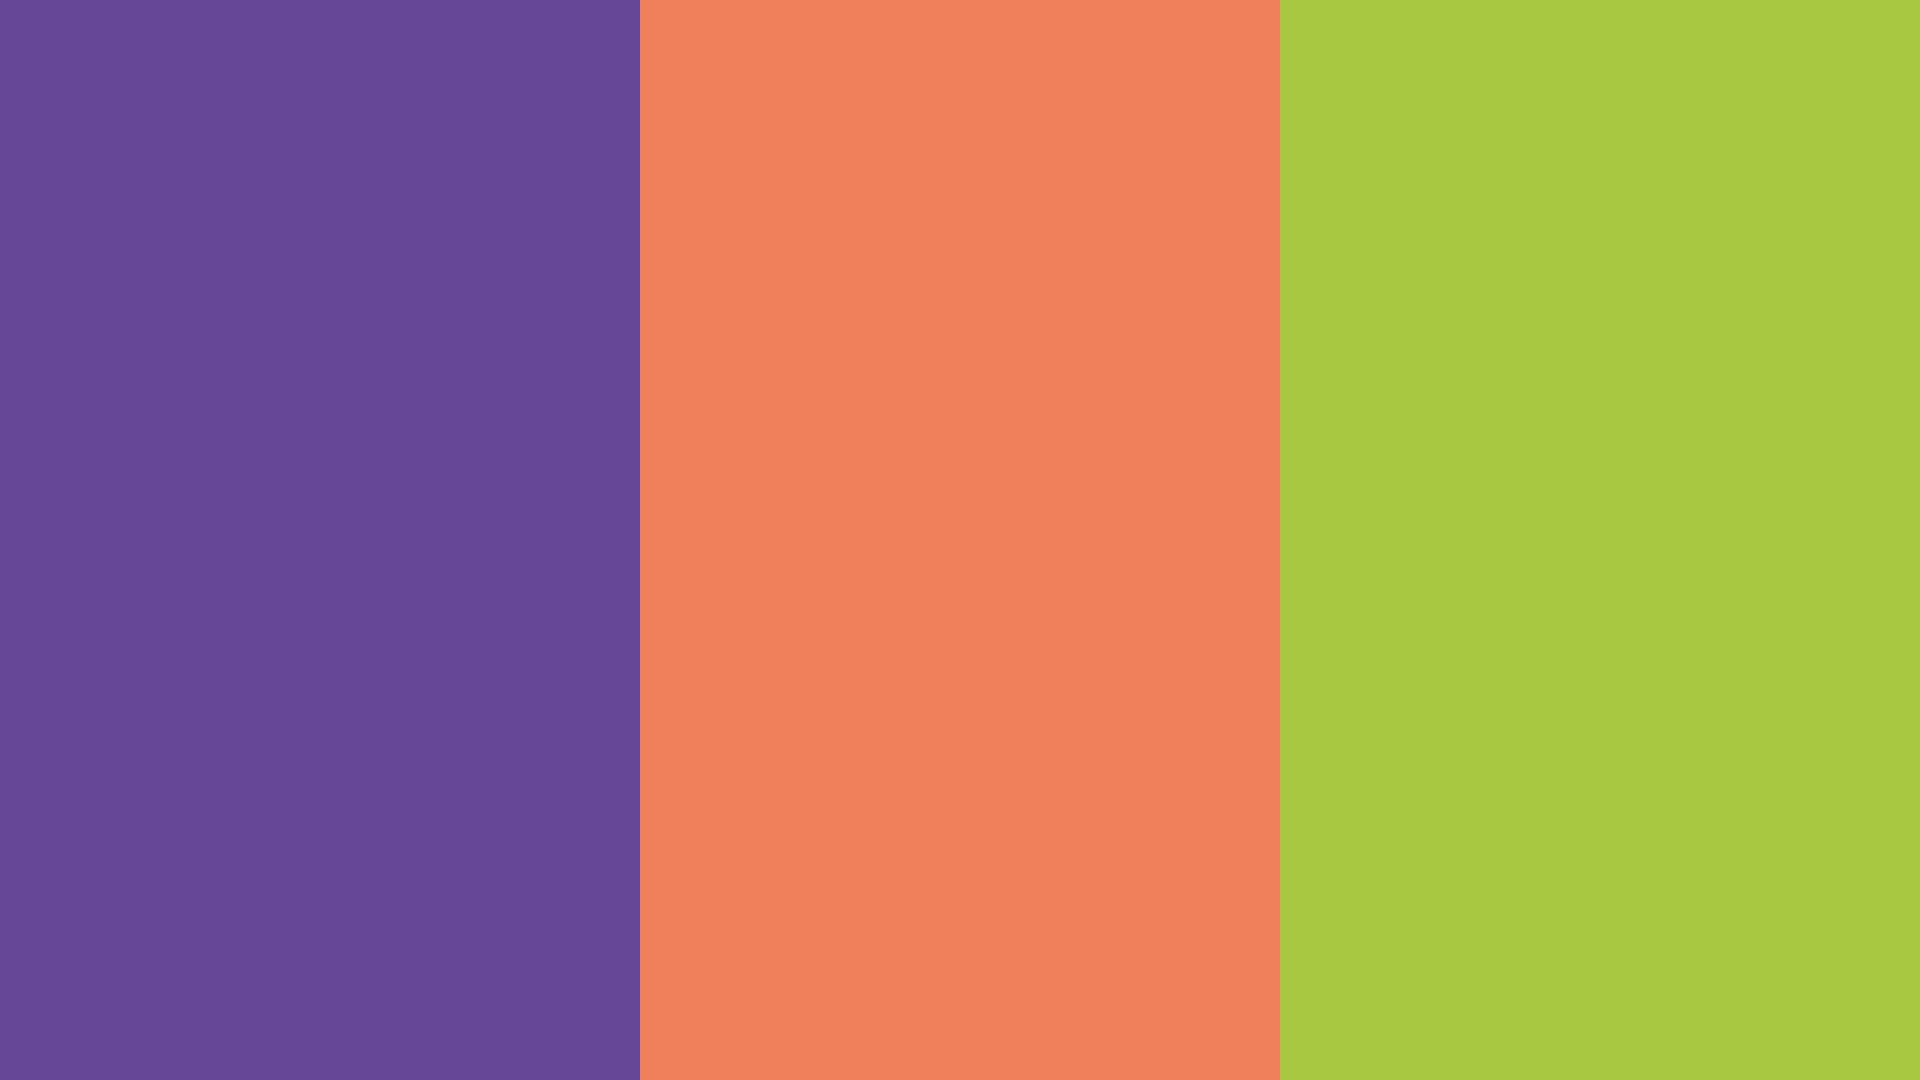 Workout Colors Color Palette